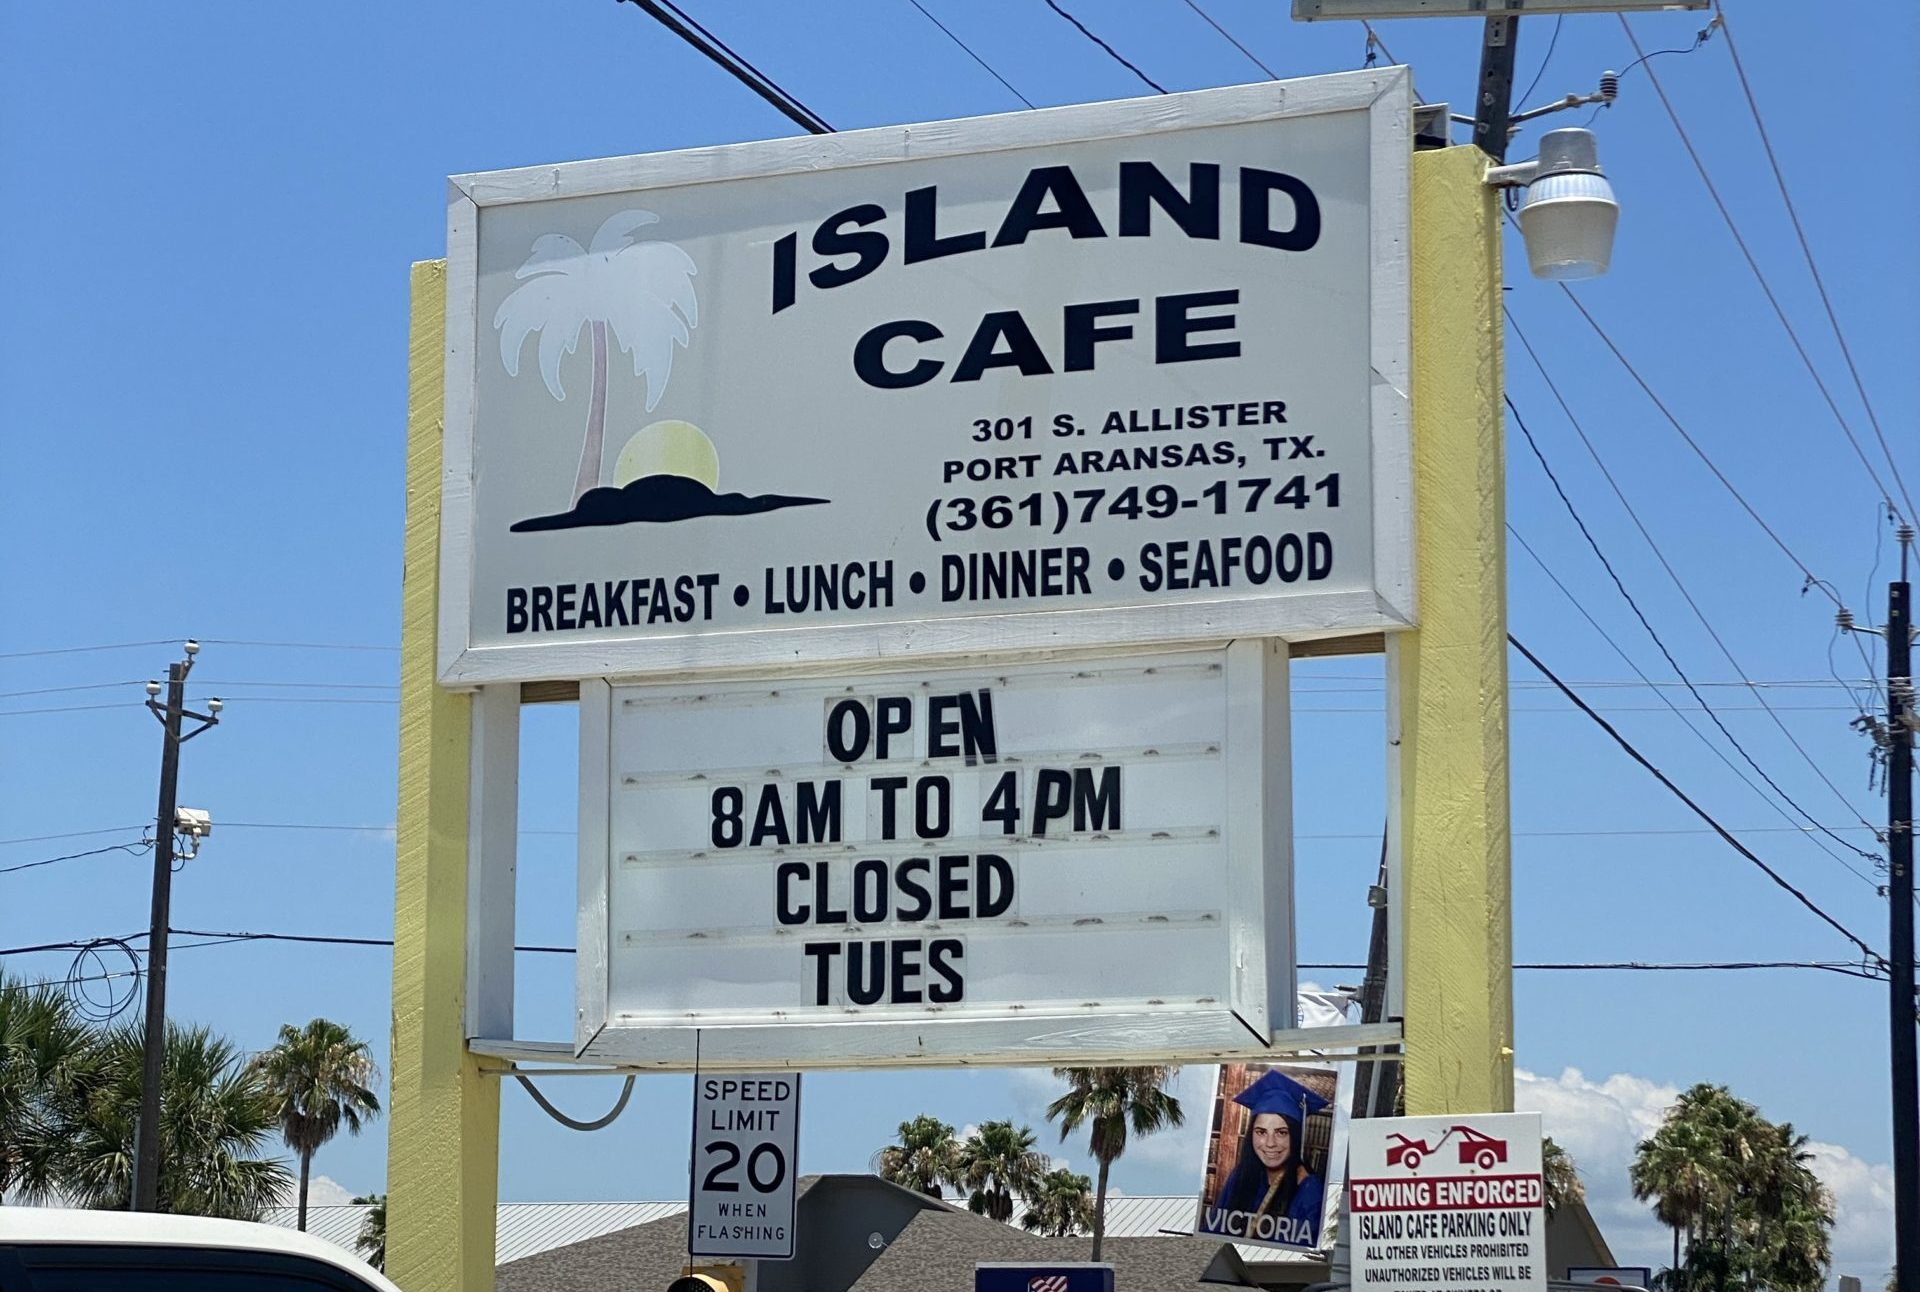 Island Cafe in Port Aransas TX | www.portaransastex.com